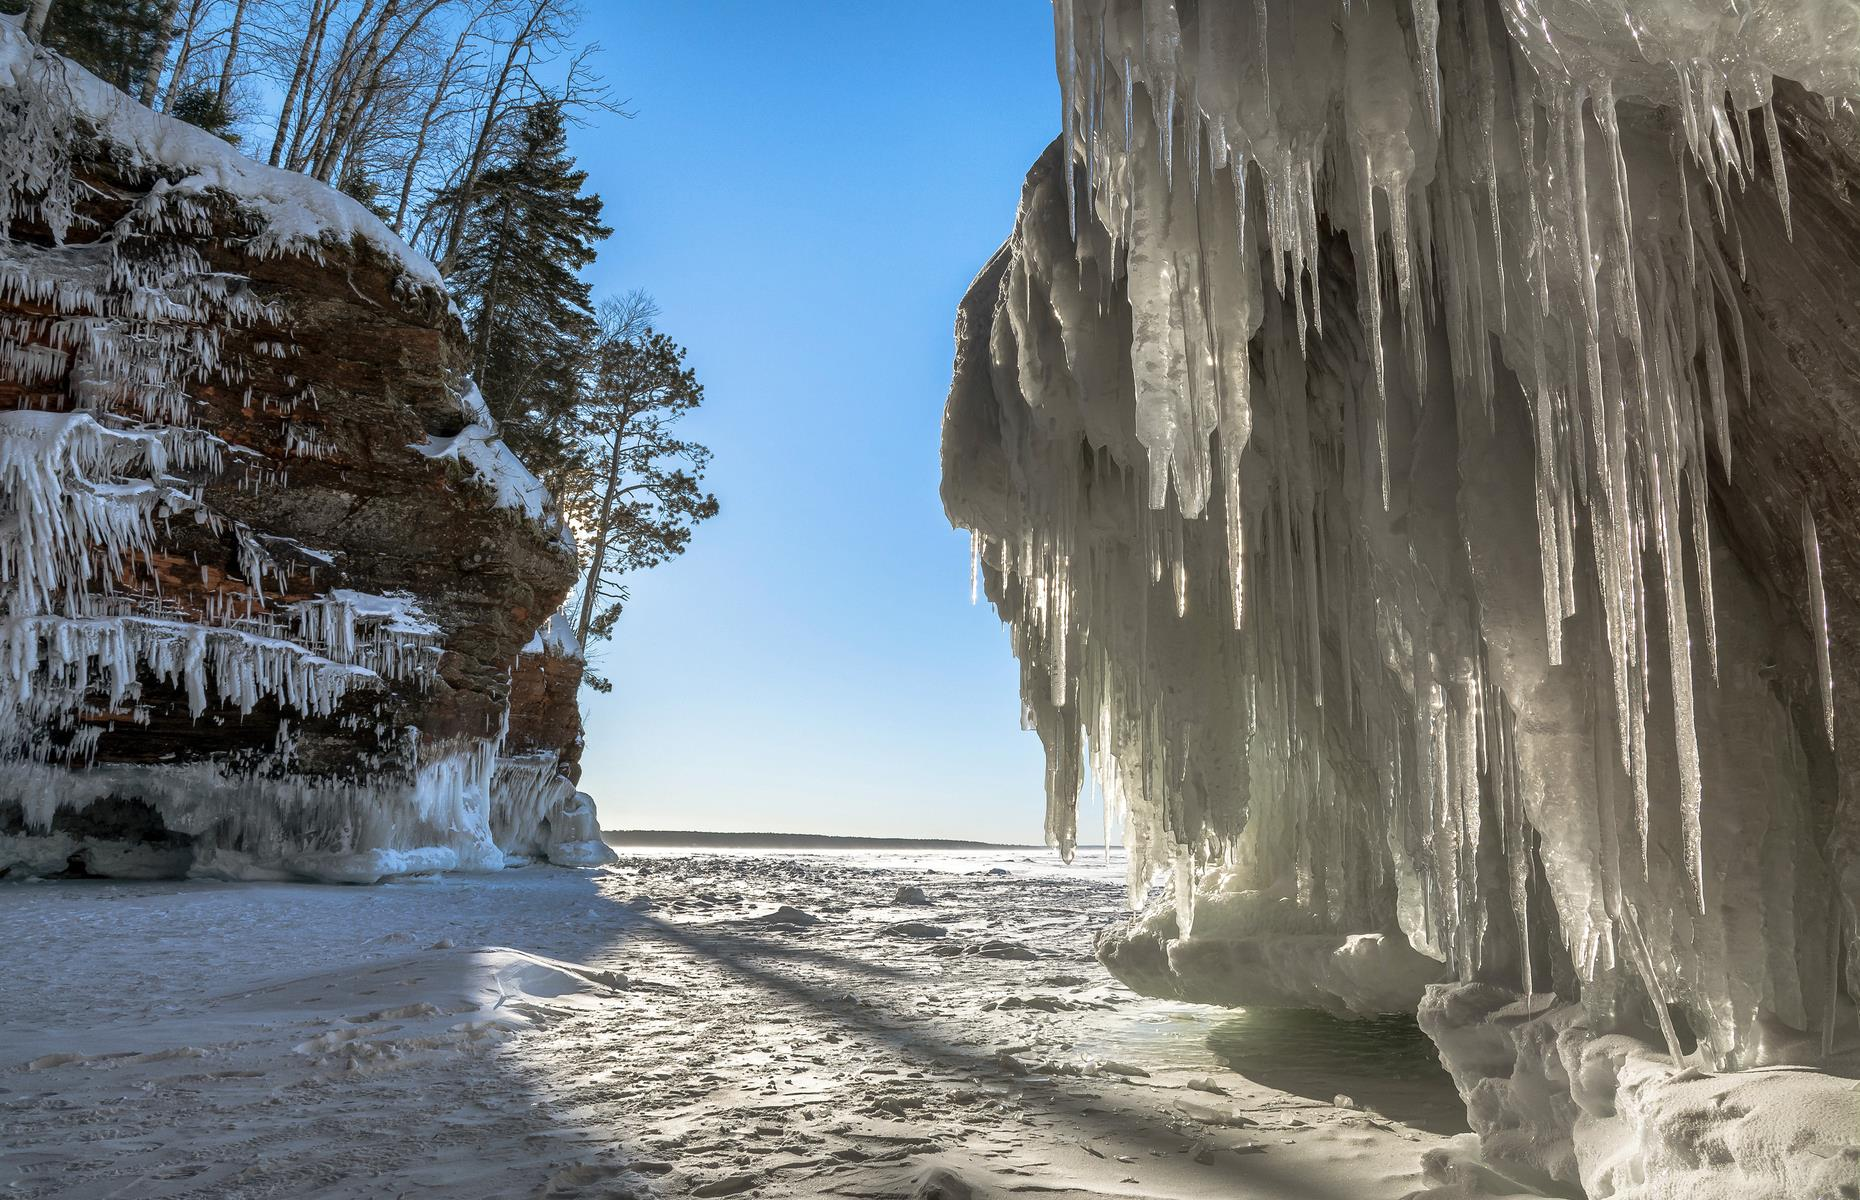 Slide 12 of 32: Apostle Islands National Lakeshore boasts all manner of natural wonders but none are more magical than the ice caves that form here in winter. Caverns drip with giant icicles and Lake Superior's ice is thick enough to walk on. Find more places you won't believe are in the USA.